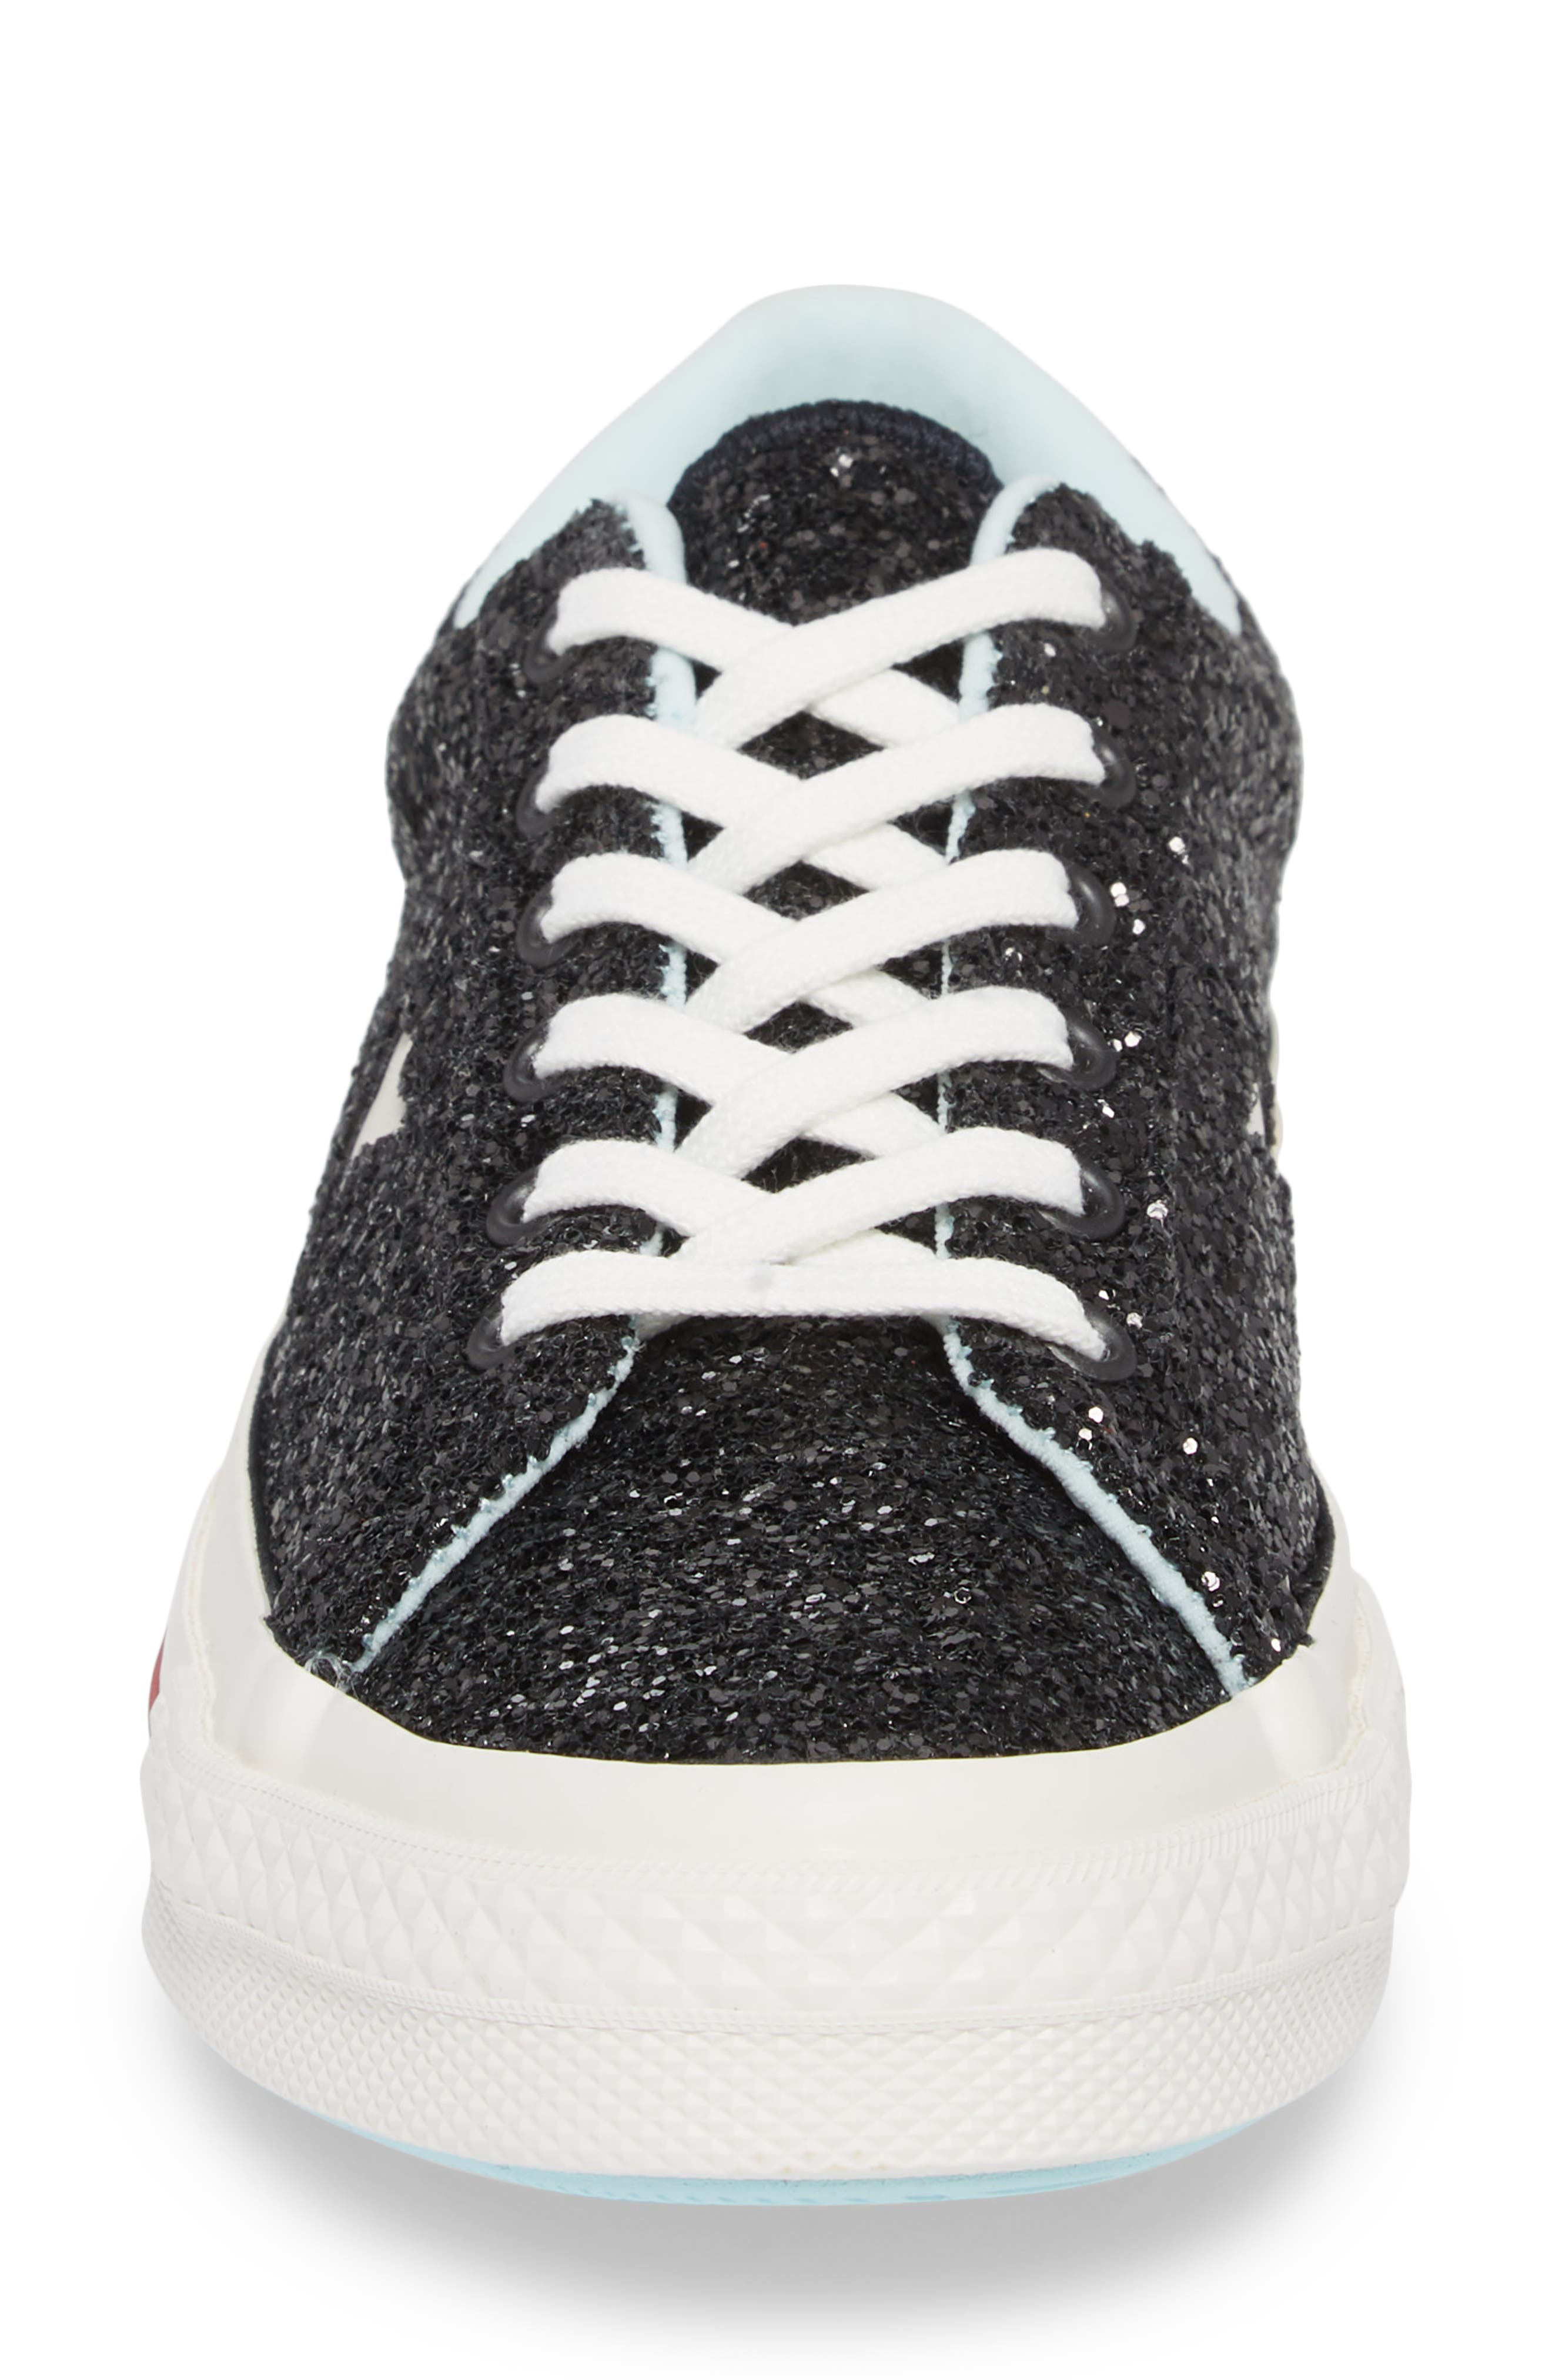 x Chiara Ferragni One Star Ox Sneaker,                             Alternate thumbnail 4, color,                             001